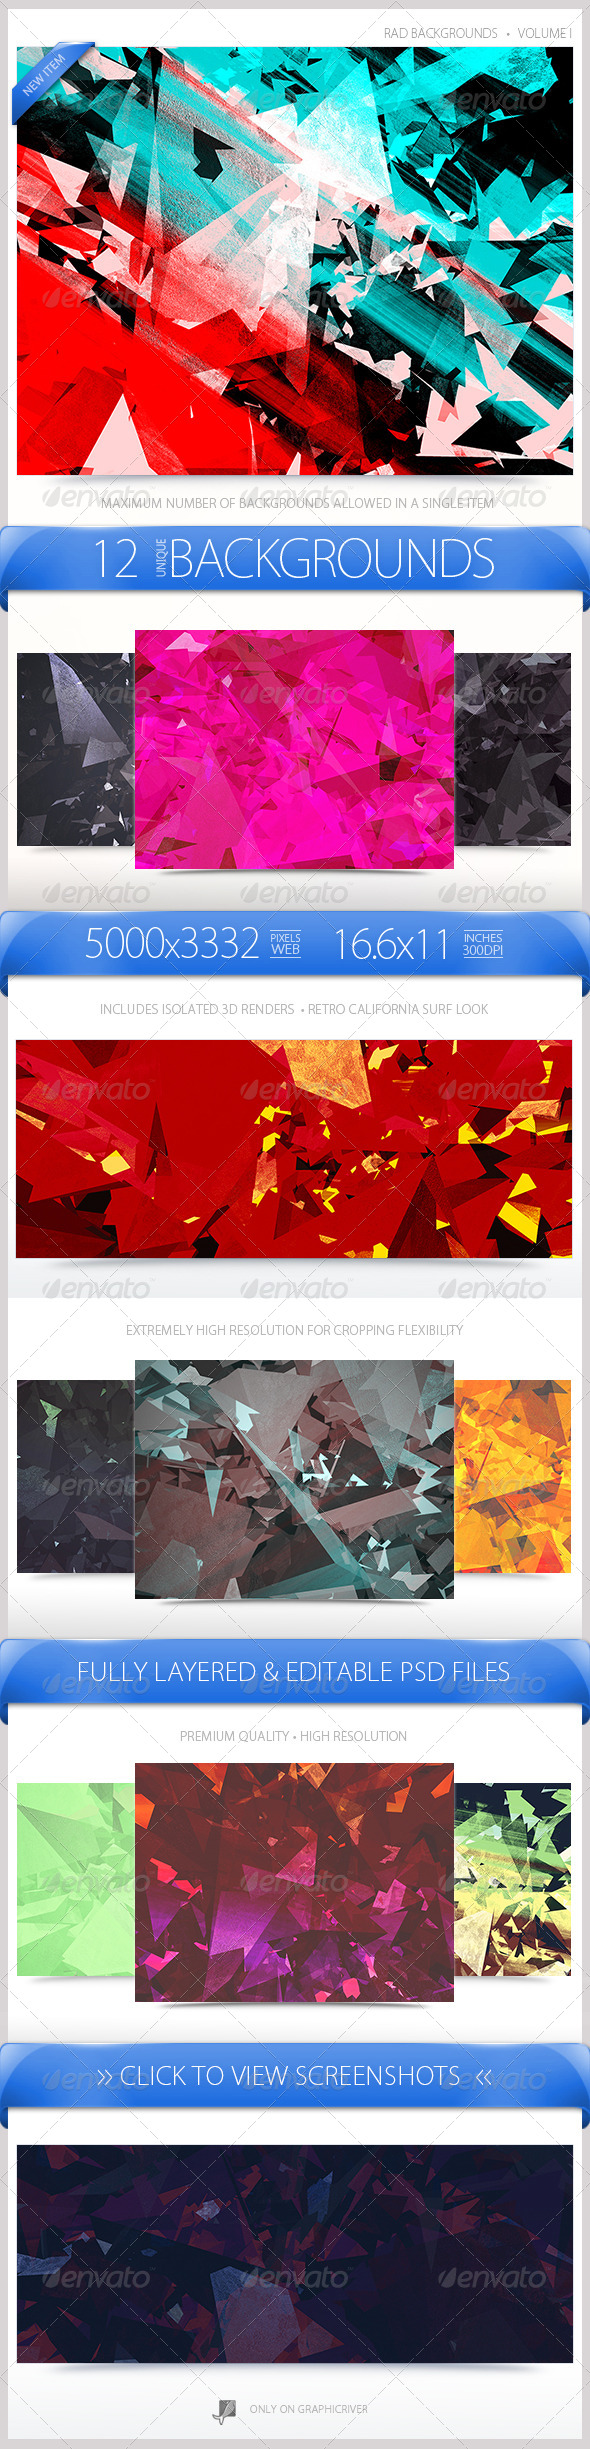 GraphicRiver Rad Backgrounds Volume 1 7294315